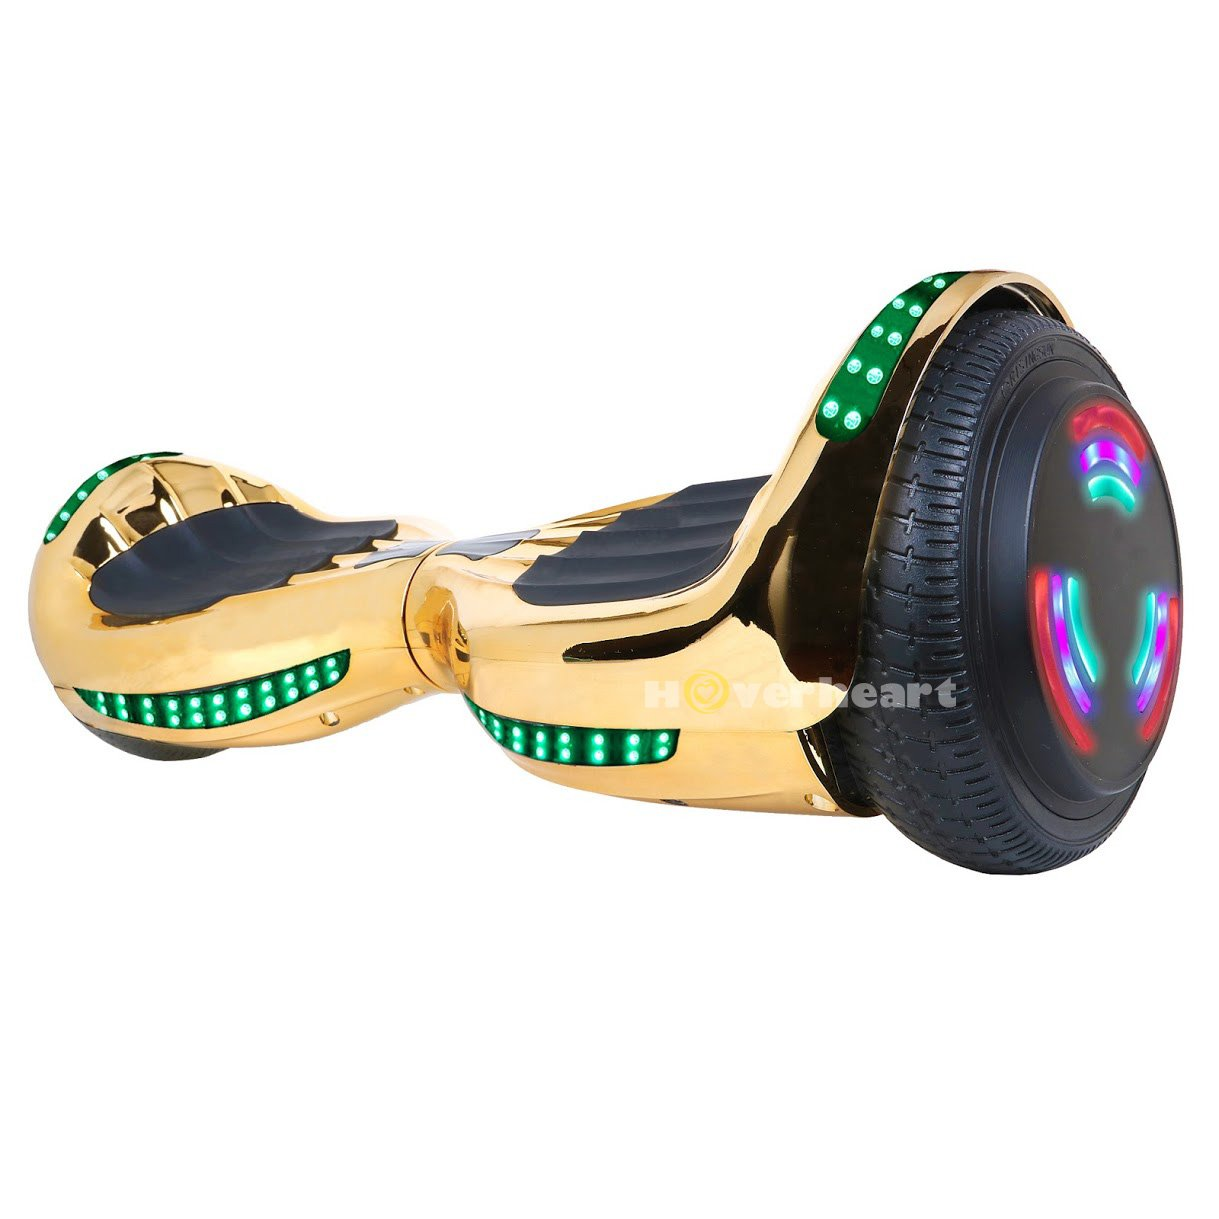 Hoverboard UL 2272 Certified Flash Wheel 6.5'' Bluetooth Speaker with LED Light Self Balancing Wheel Electric Scooter (Chrome Gold) by Hoverheart